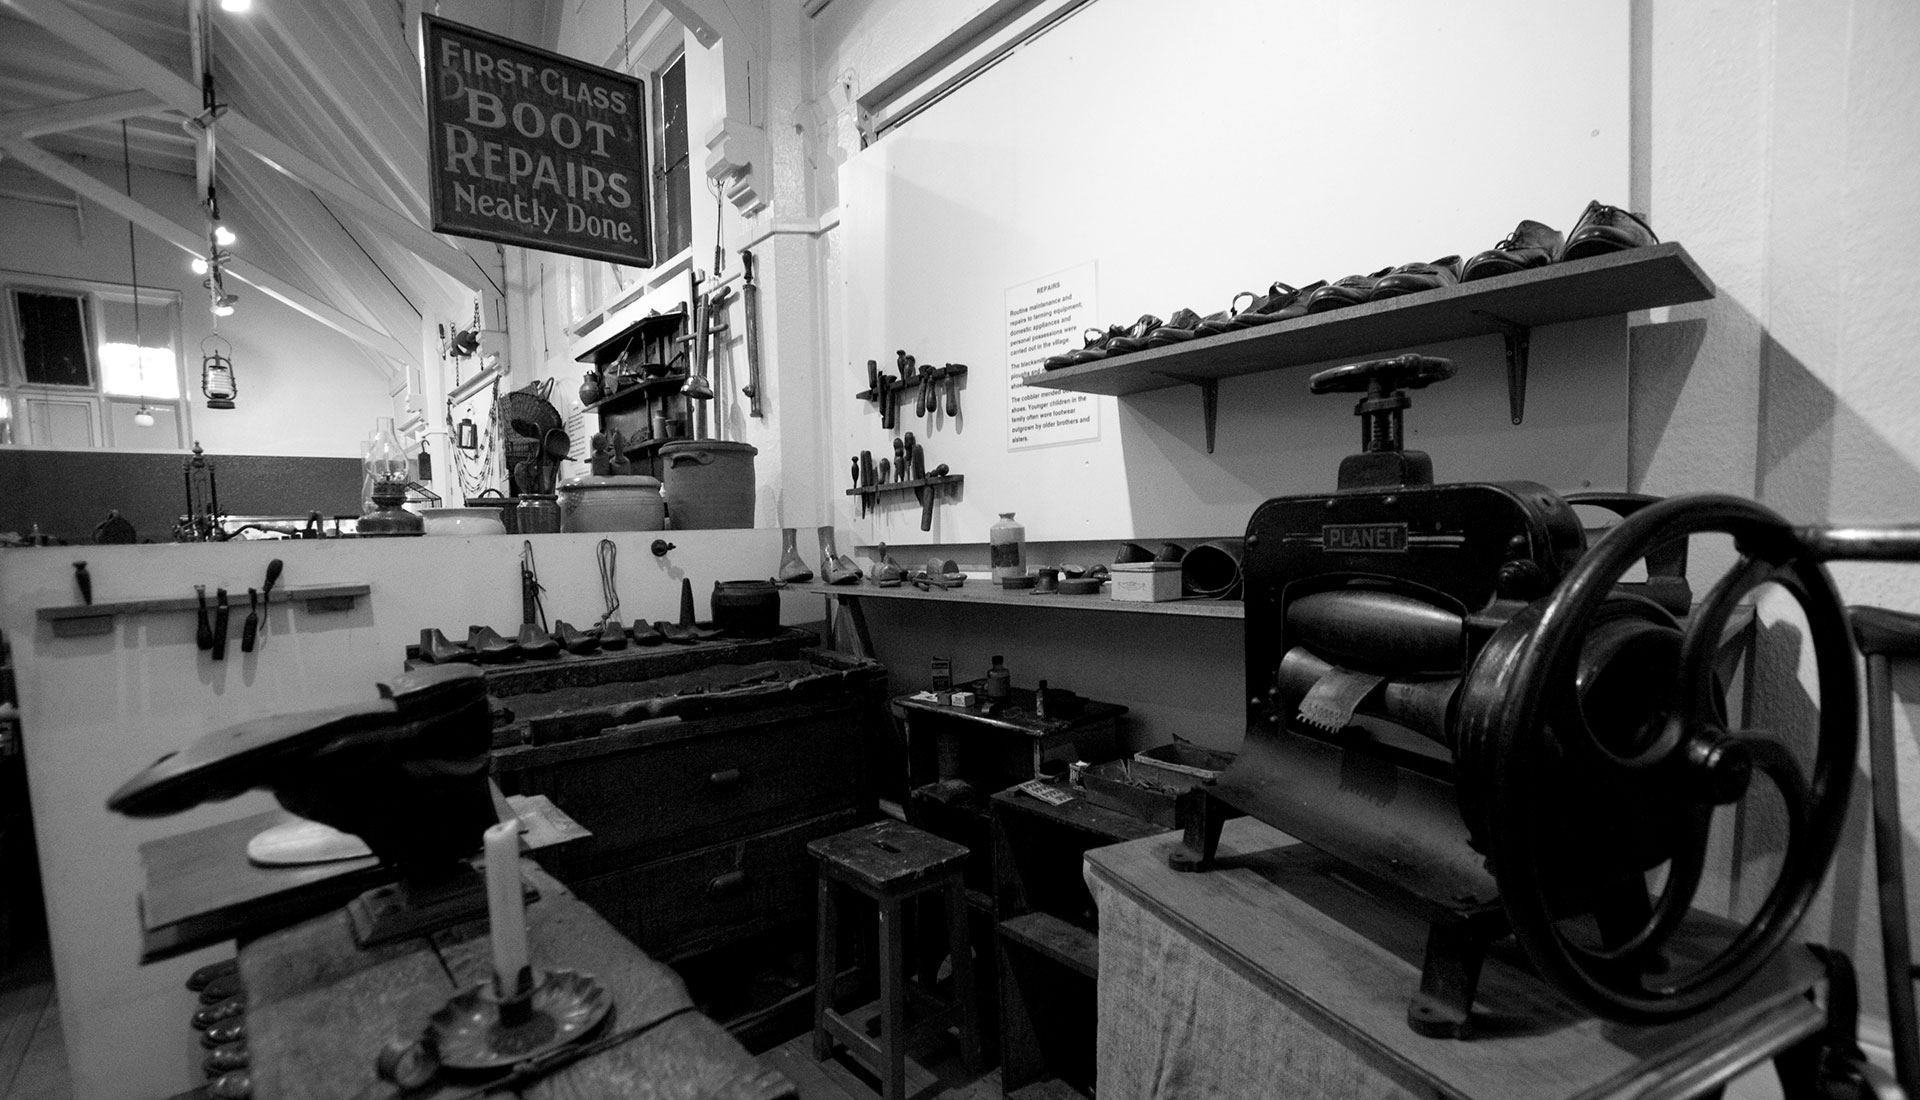 The cobblers shop